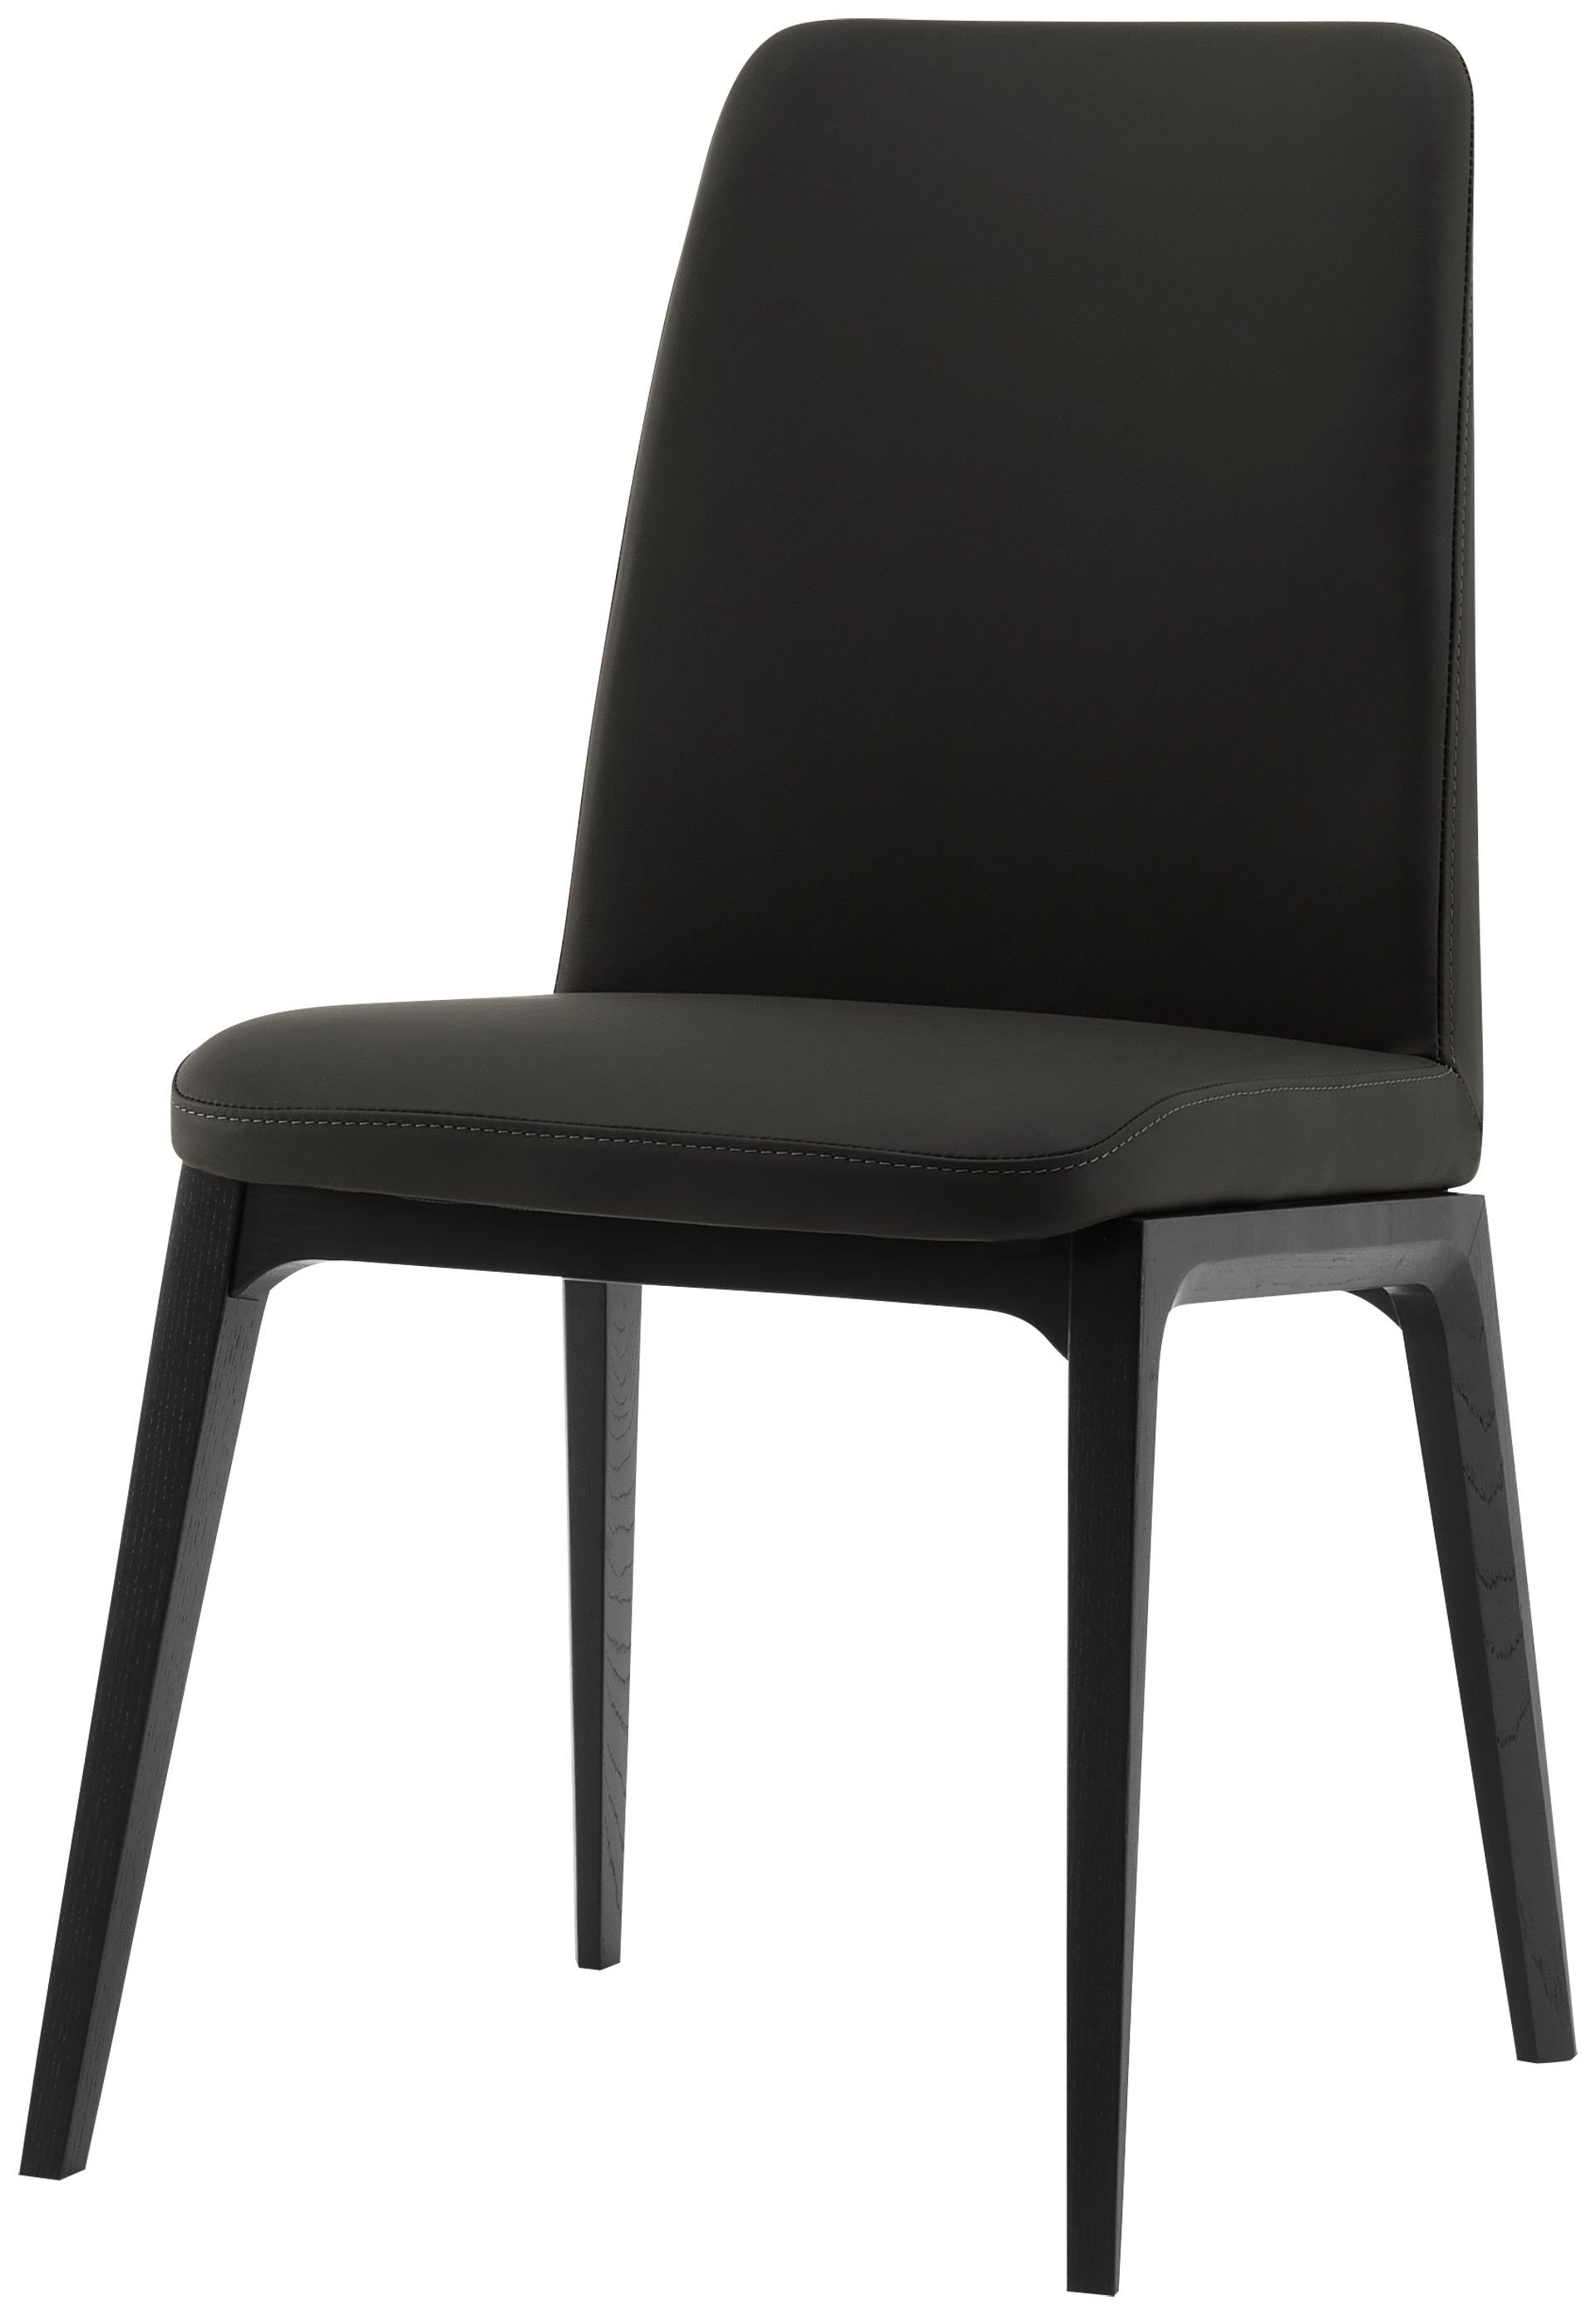 Modern Dining Chairs, Designer Dining